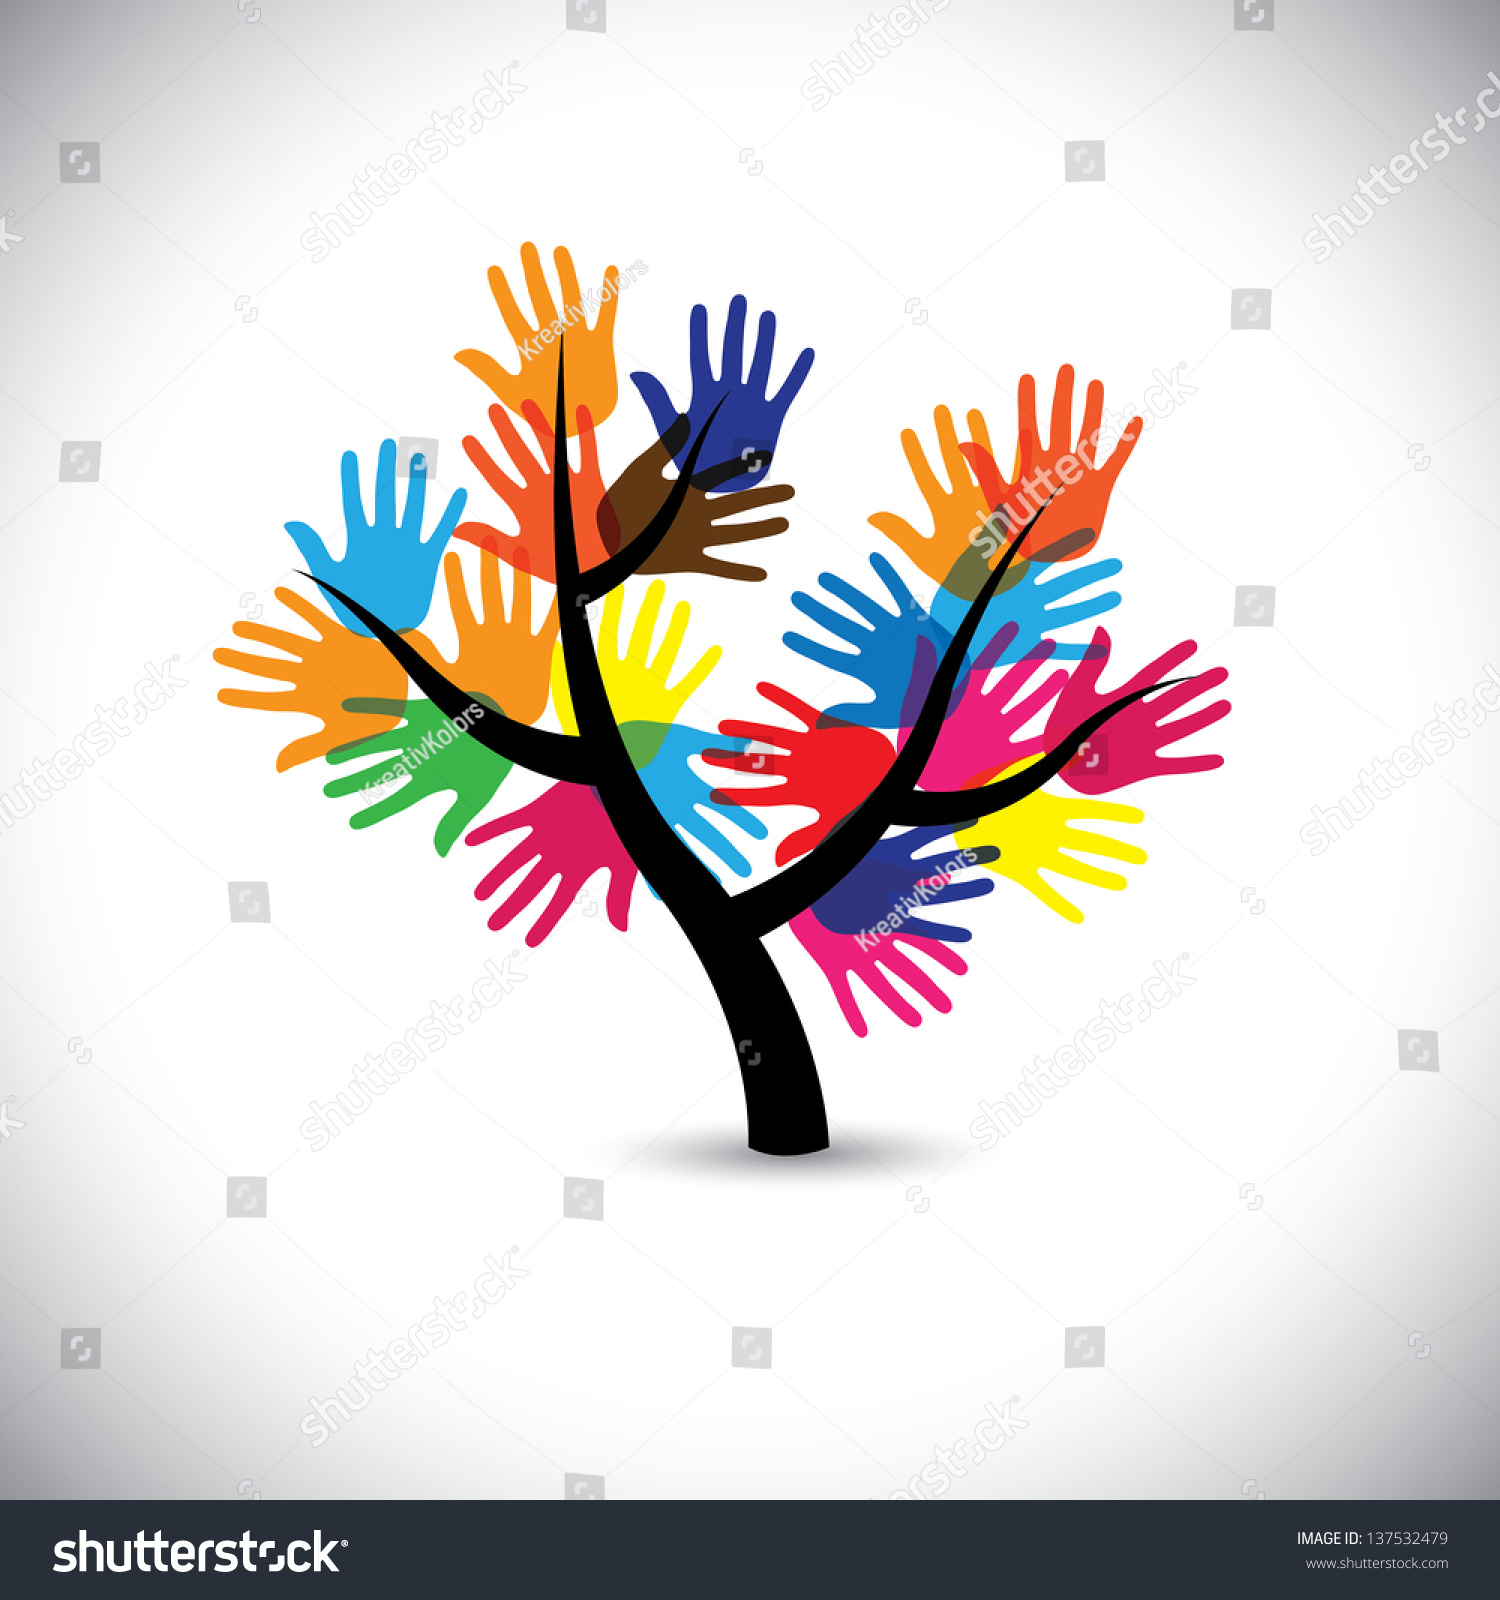 People Helping Each Other: Colorful Hand Palm Imprints Leaves Flowers Stock